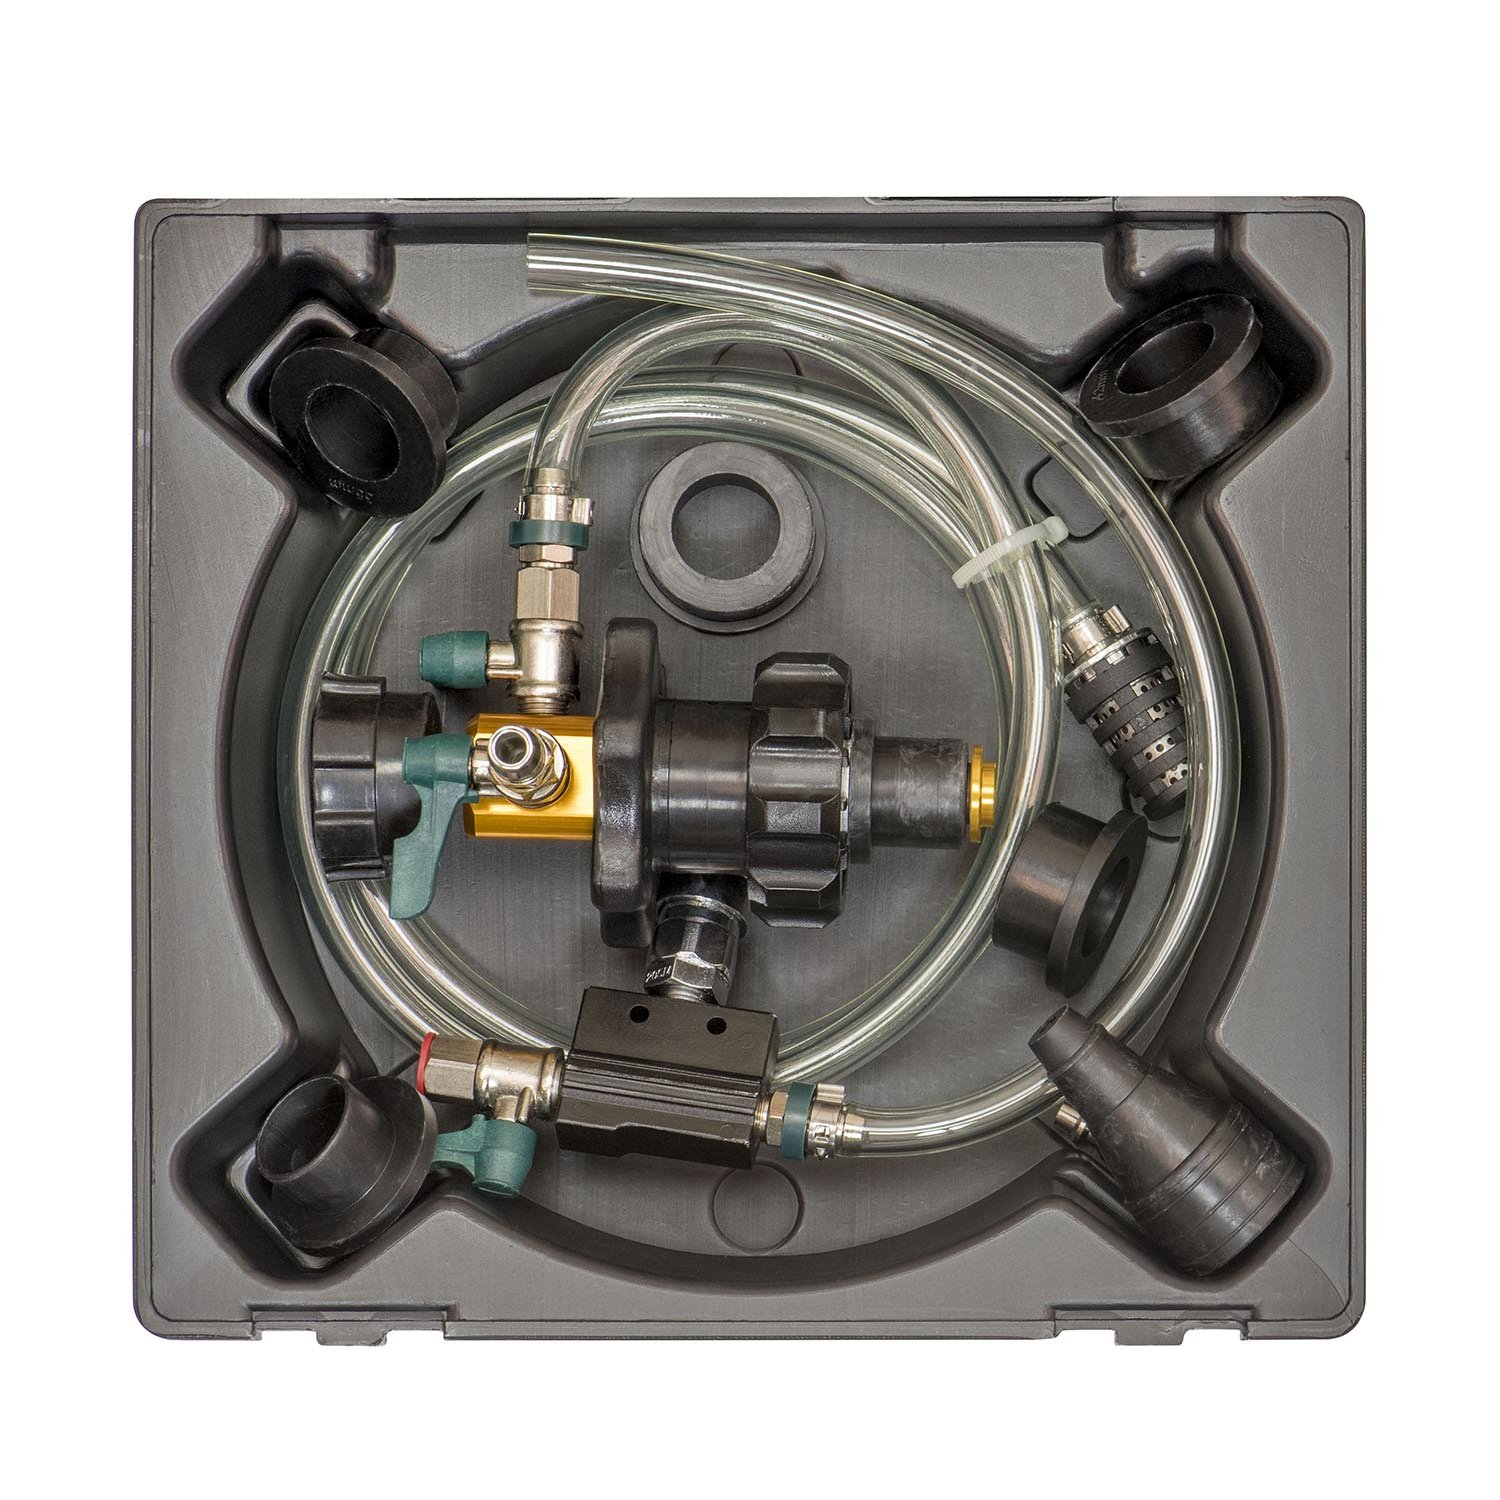 OEMTOOLS 24444 5 Adapters Cooling System Refiller Kit